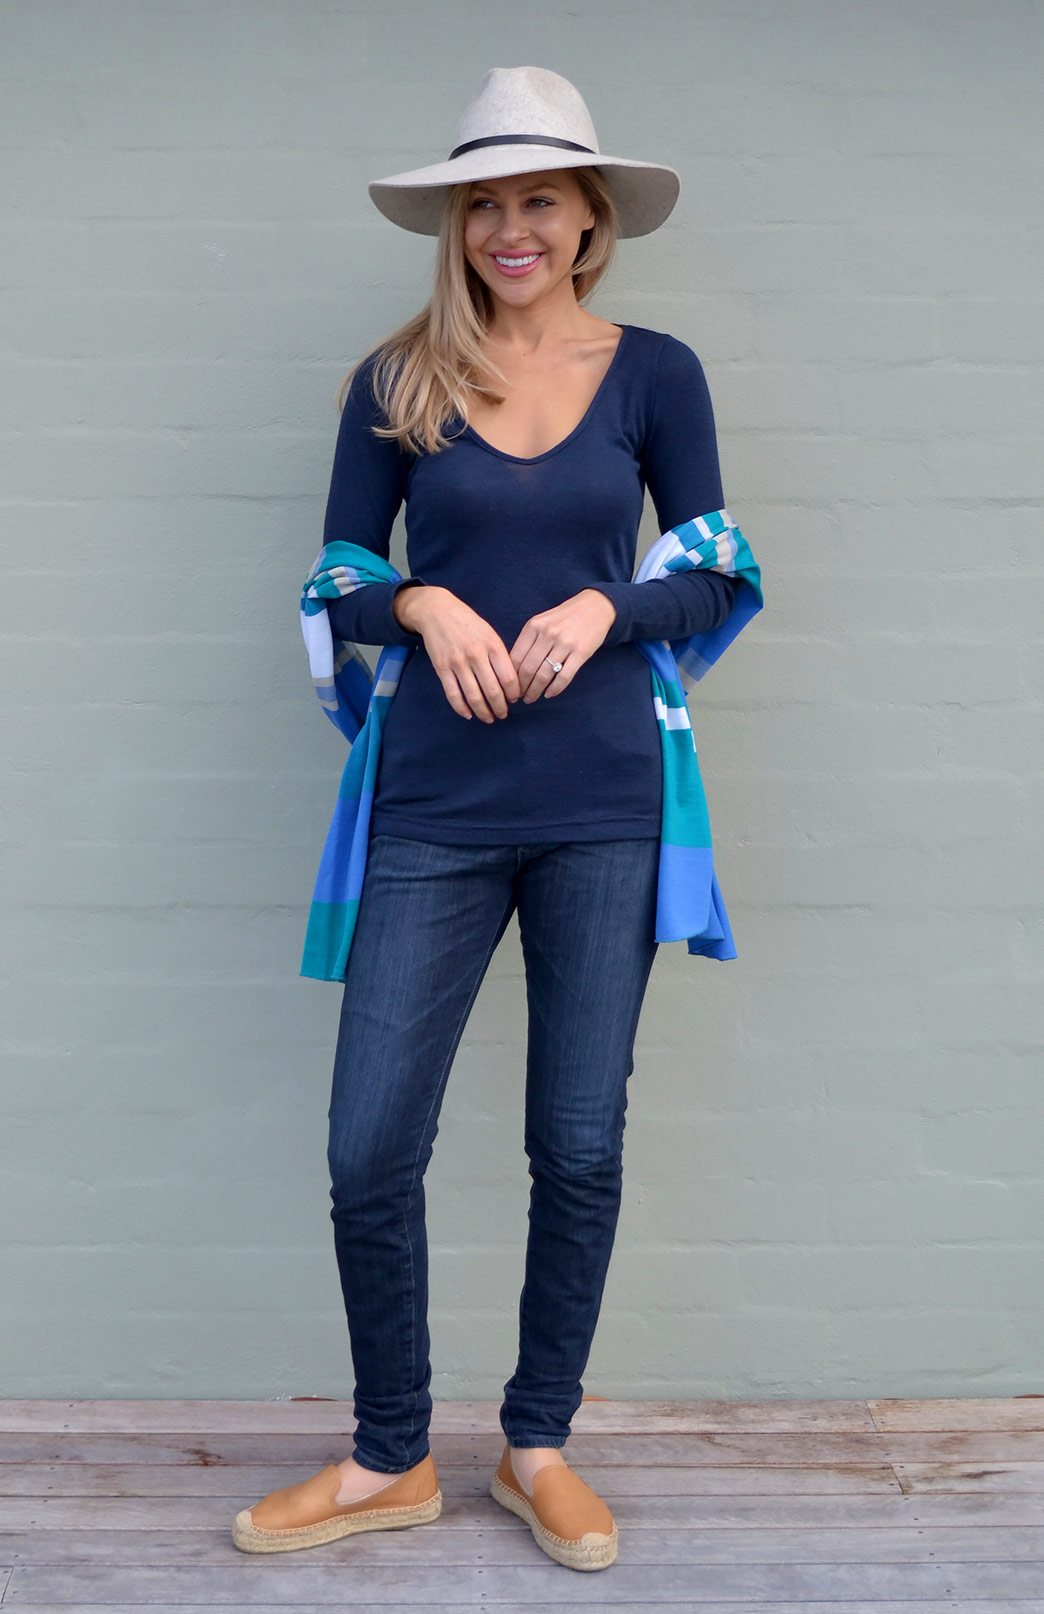 V-Neck Top (Rib) - Women's Ink Blue Long Sleeved V-Neck Top - Smitten Merino Tasmania Australia